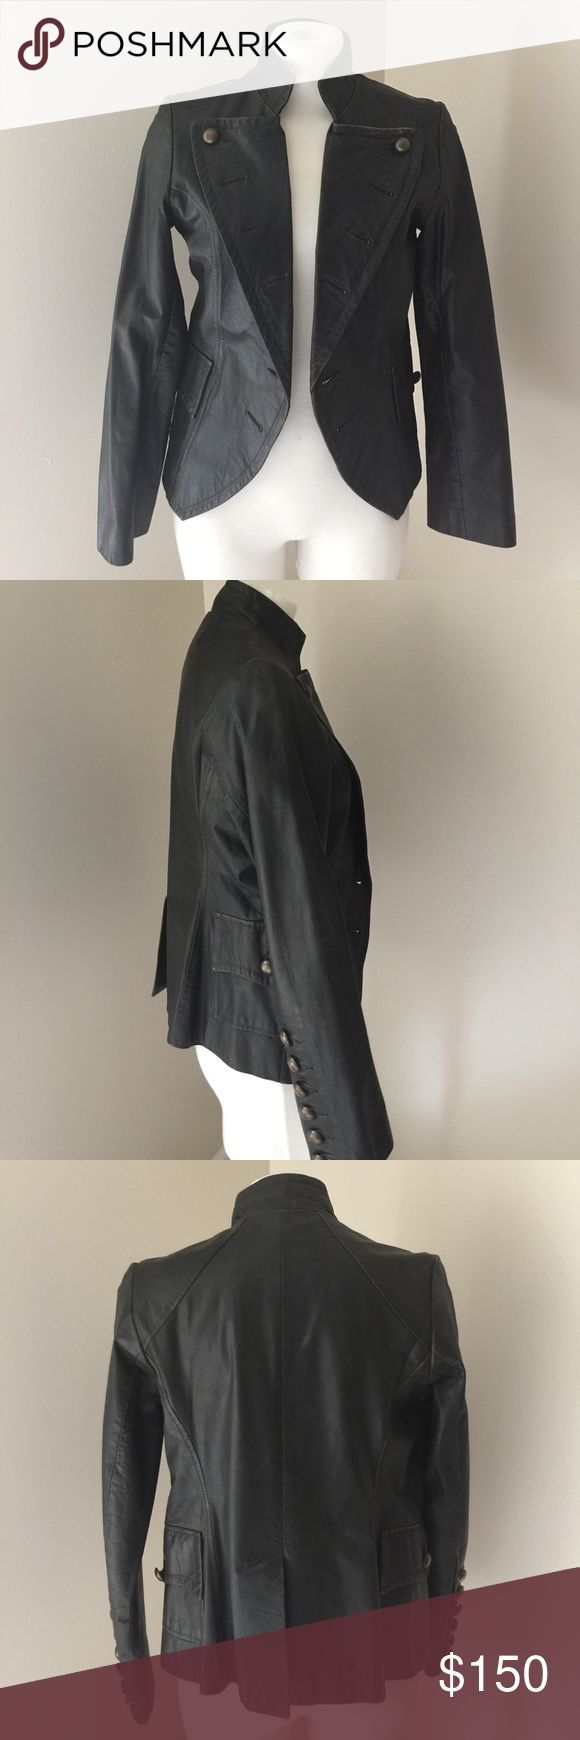 🎉SALE🎉Cino vintage leather jacket Cino vintage leather jacket cino Jackets & Coats